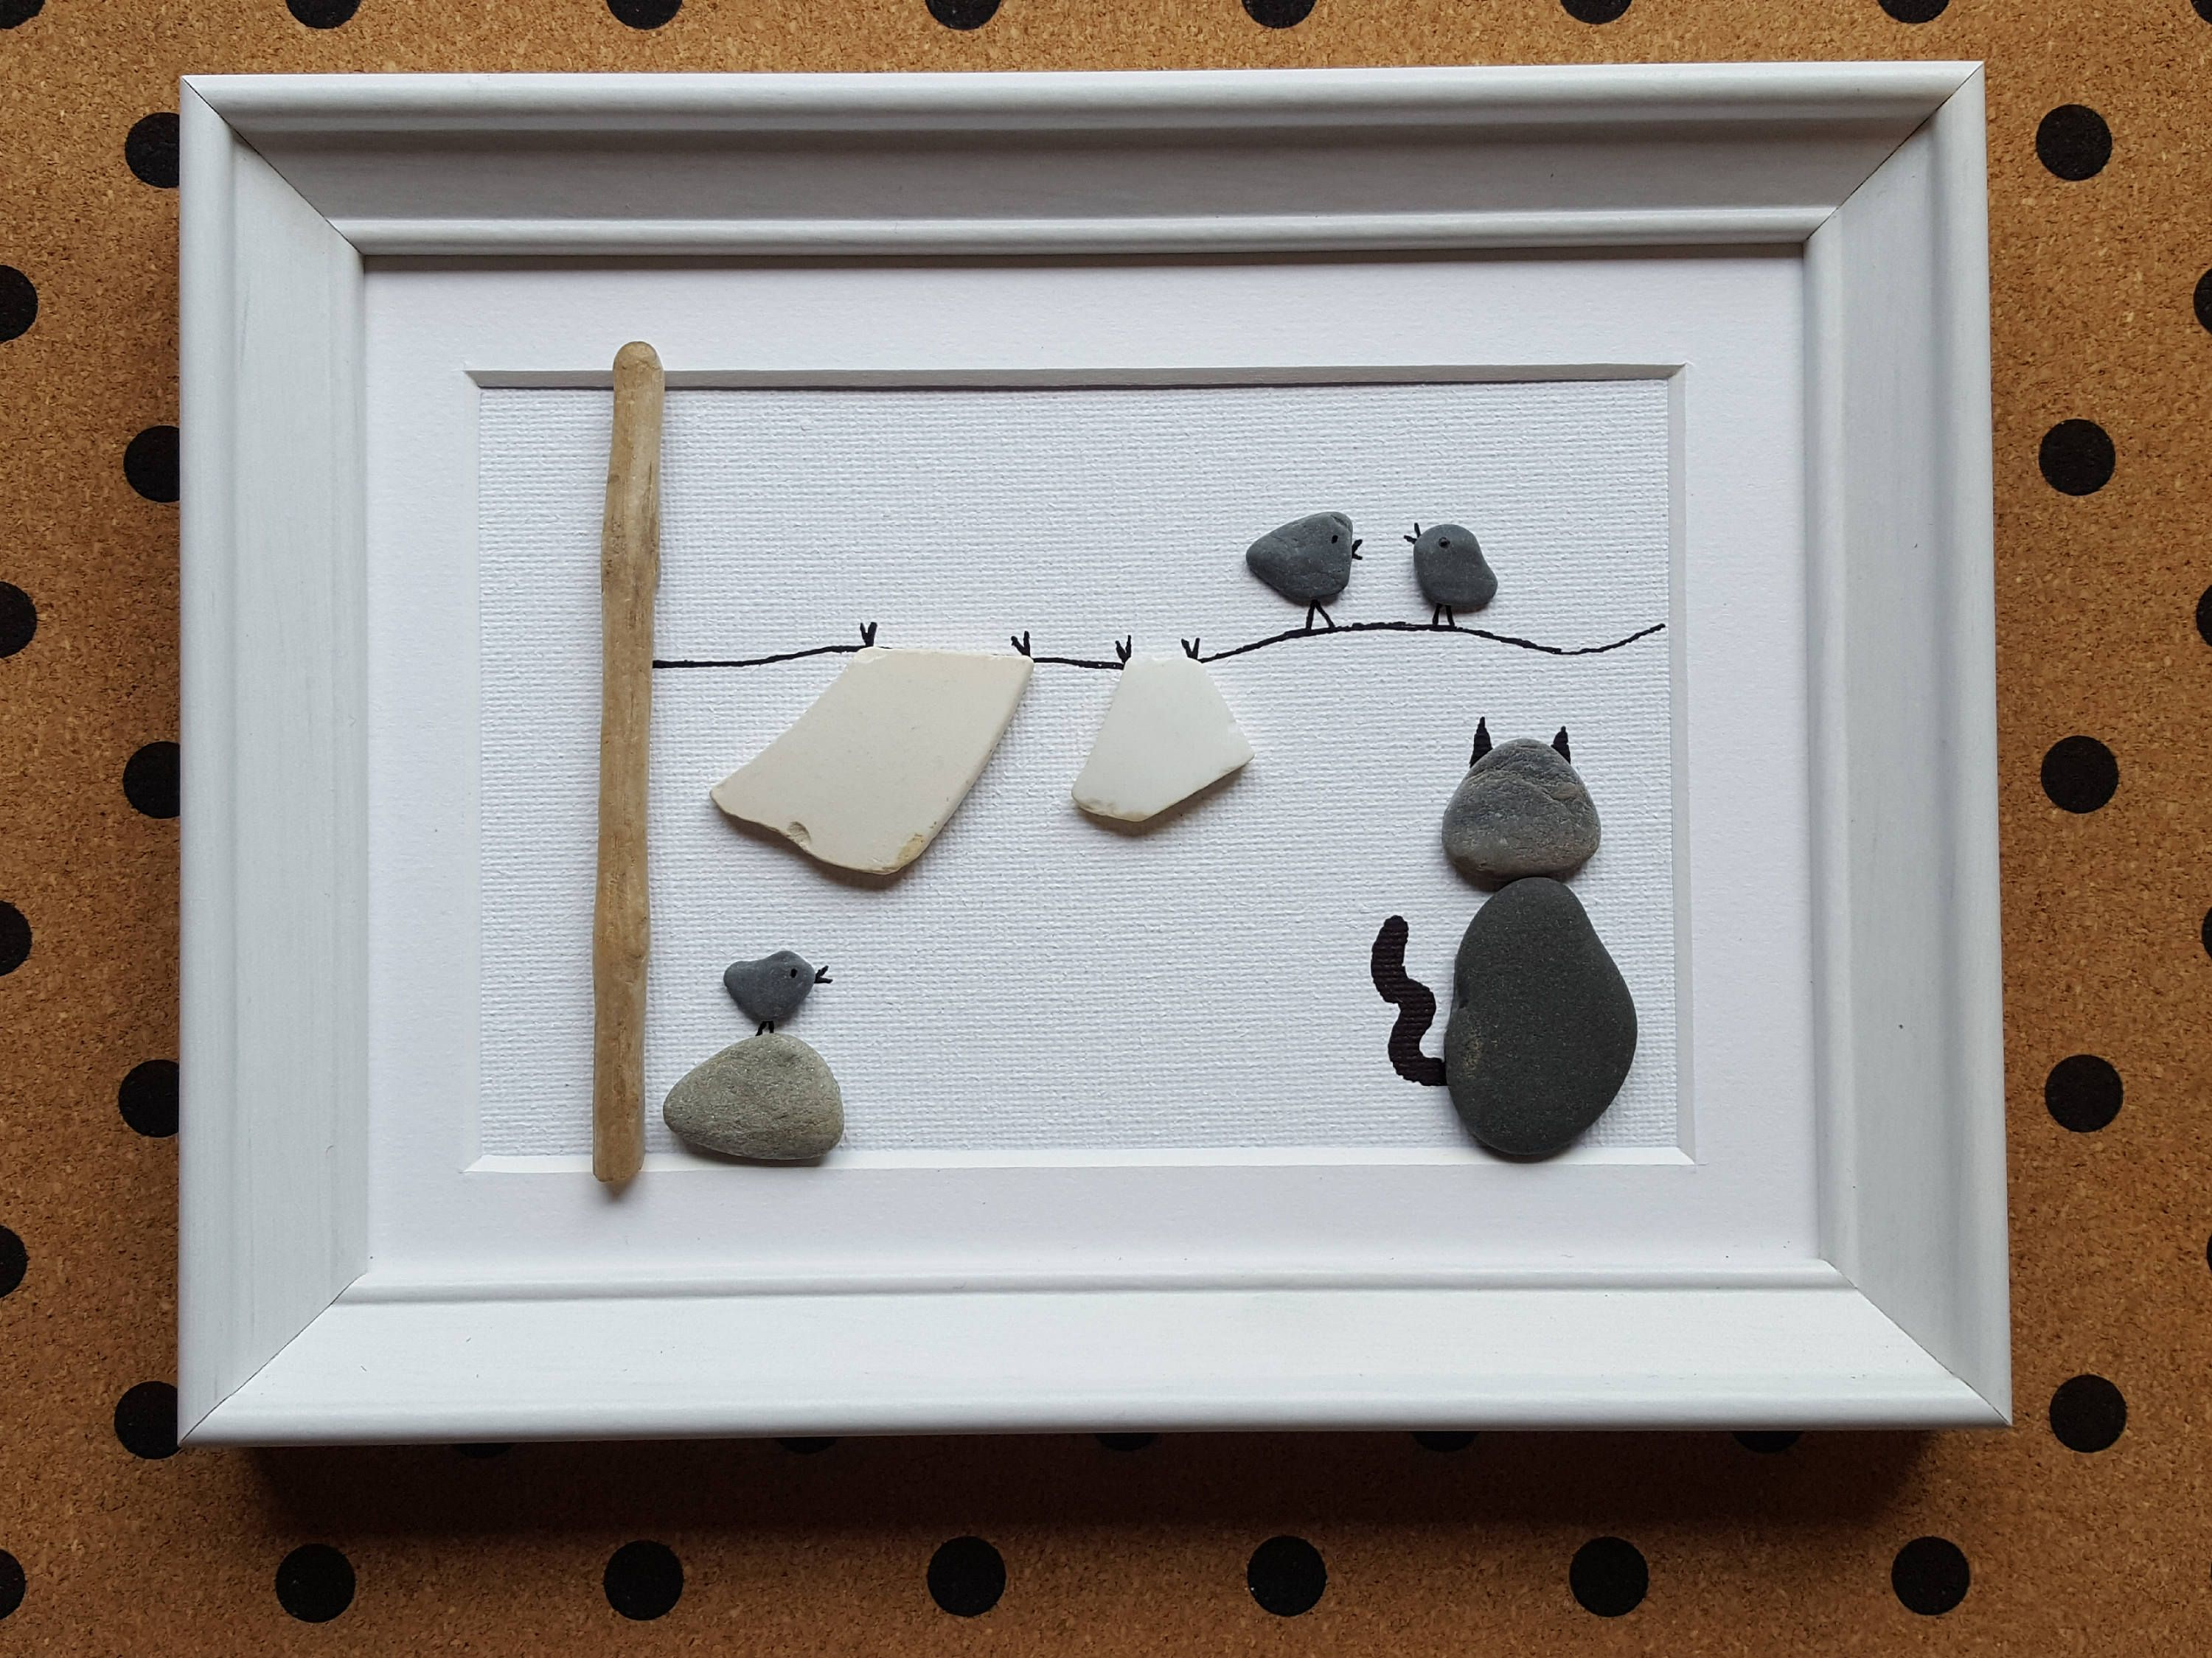 Handmade Pebble Art Frame Washing Line With Cat And Birds Crockery As Washing One Of A Kind By Cristinasquirkycraft On Etsy Pebble Art Rock Art Art